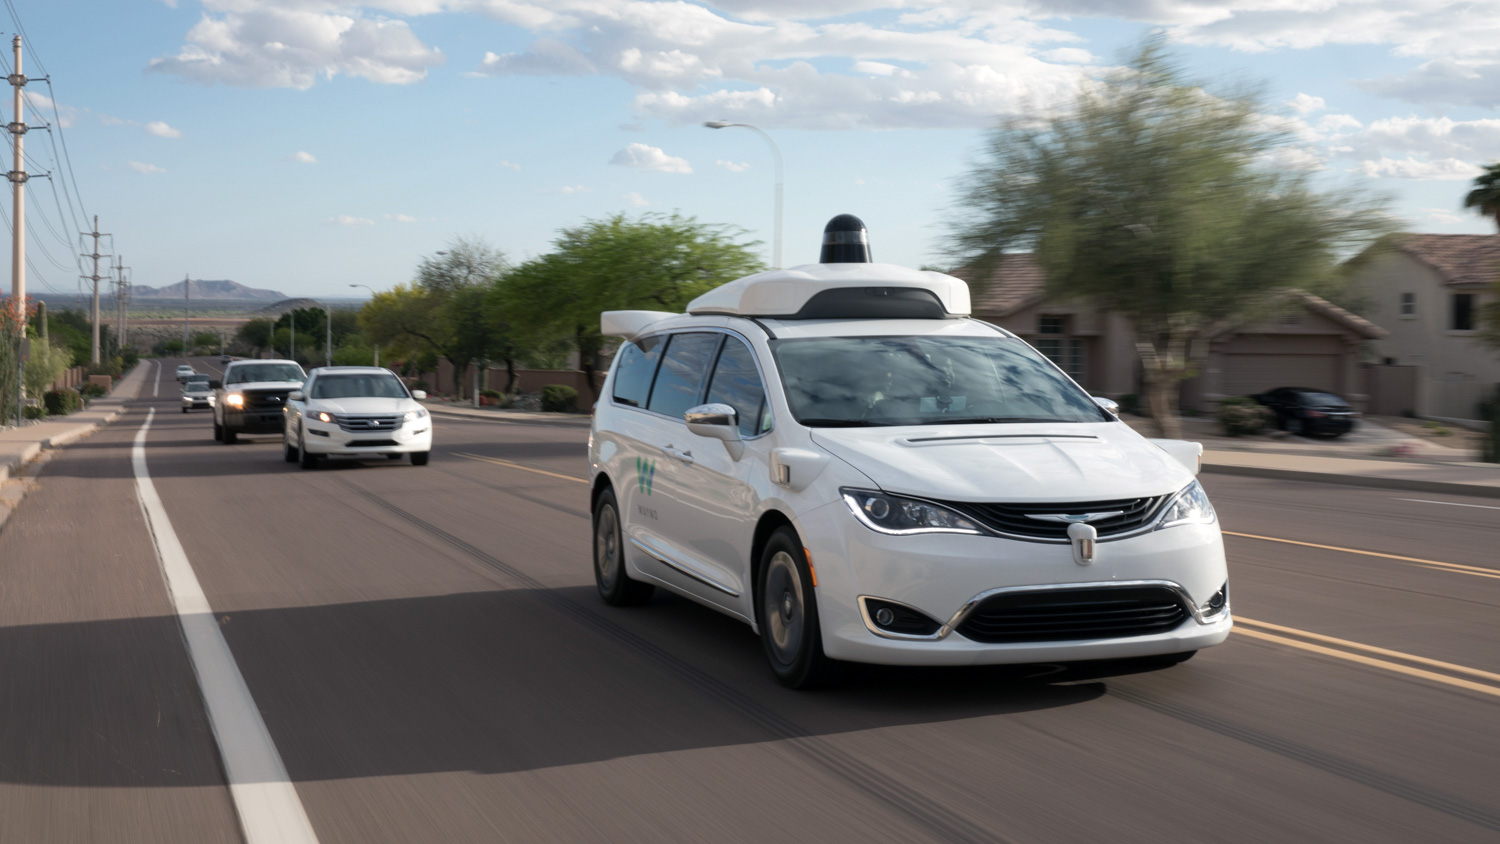 Self-Guided Curriculum Helps Teens Ride into a Safer Future | Let's Talk Self-Driving